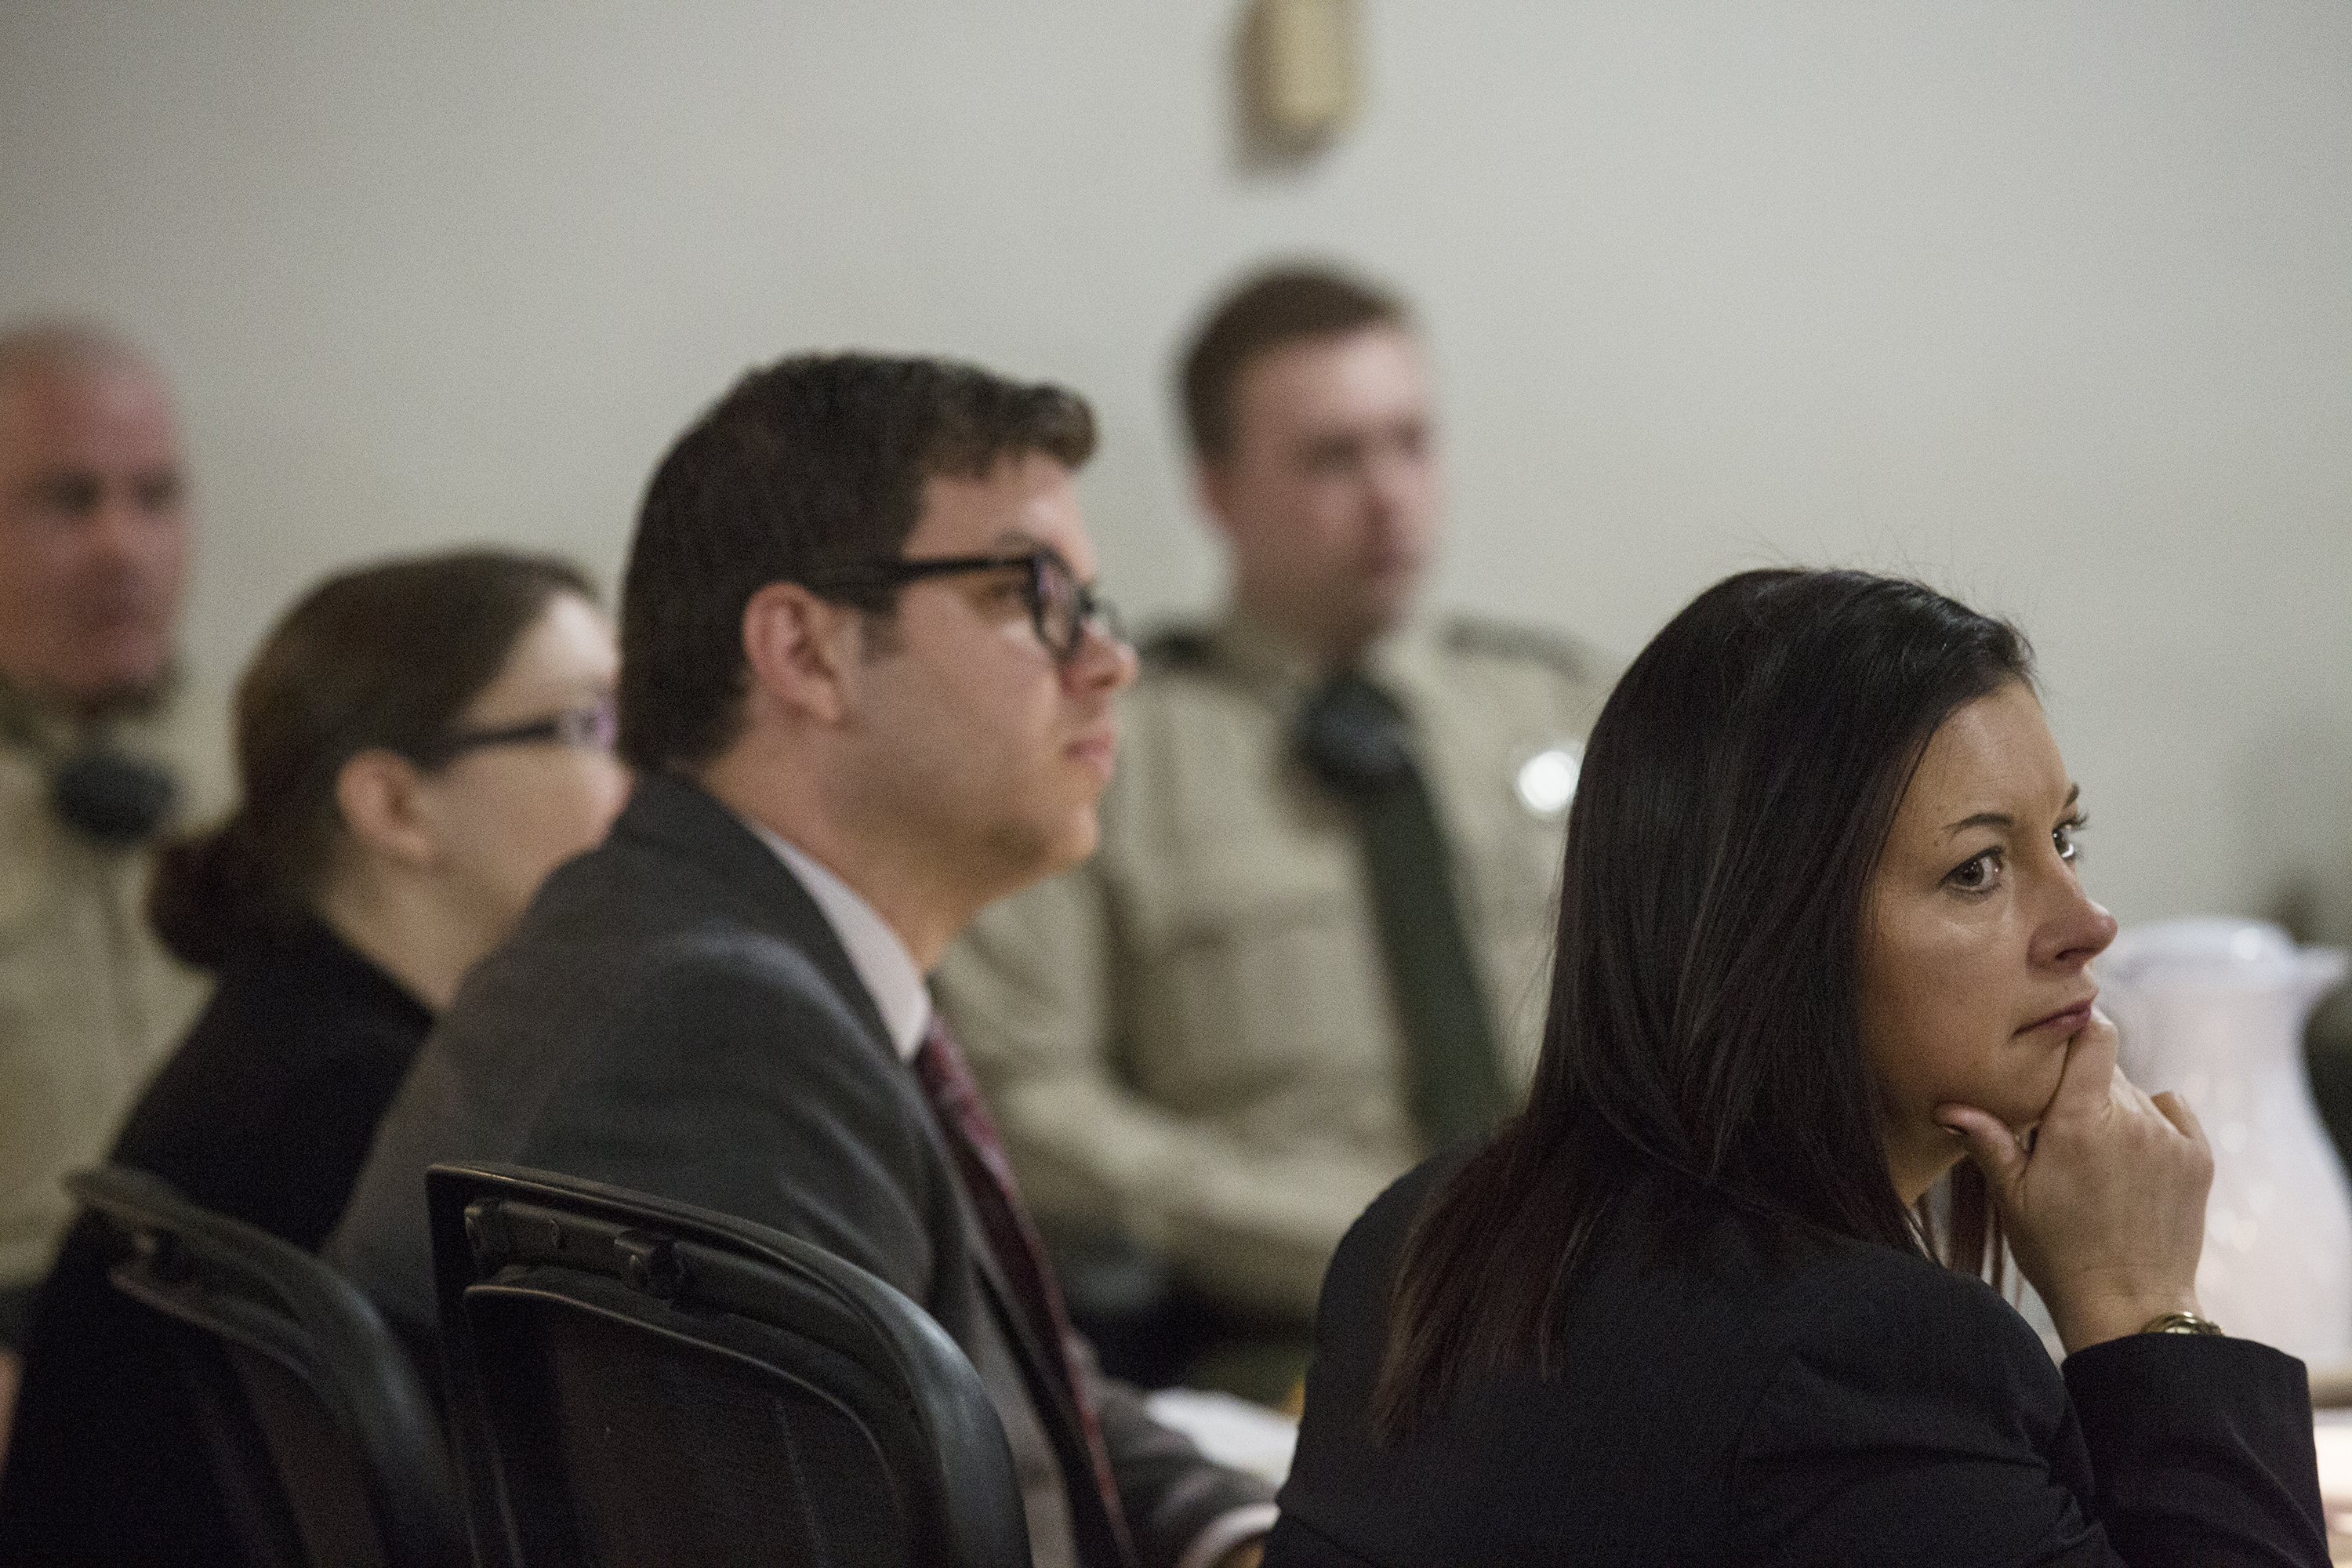 Defense Attorneys Thomas Augustine and Jennifer Larson listen to testimony during Nicole Finn's trial for murder, kidnapping and child endangerment on Wednesday, Dec. 6, 2017, at the Polk County Courthouse. (Kelsey Kremer /The Des Moines Register via AP, Pool)